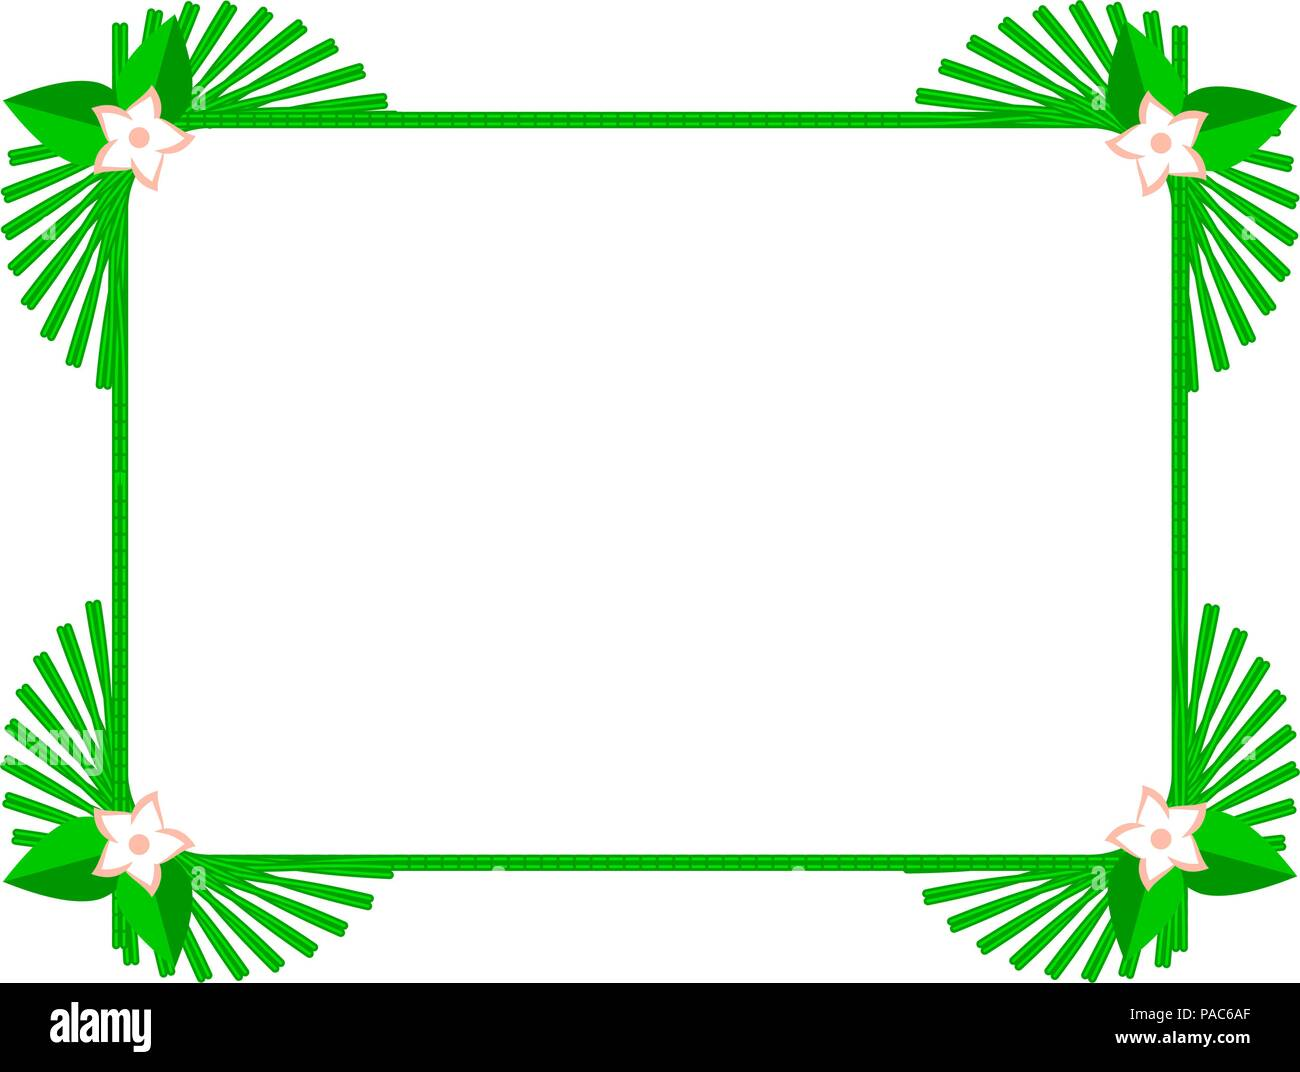 Green Square Summer Frame or Border. Vector Design Elements Set for ...